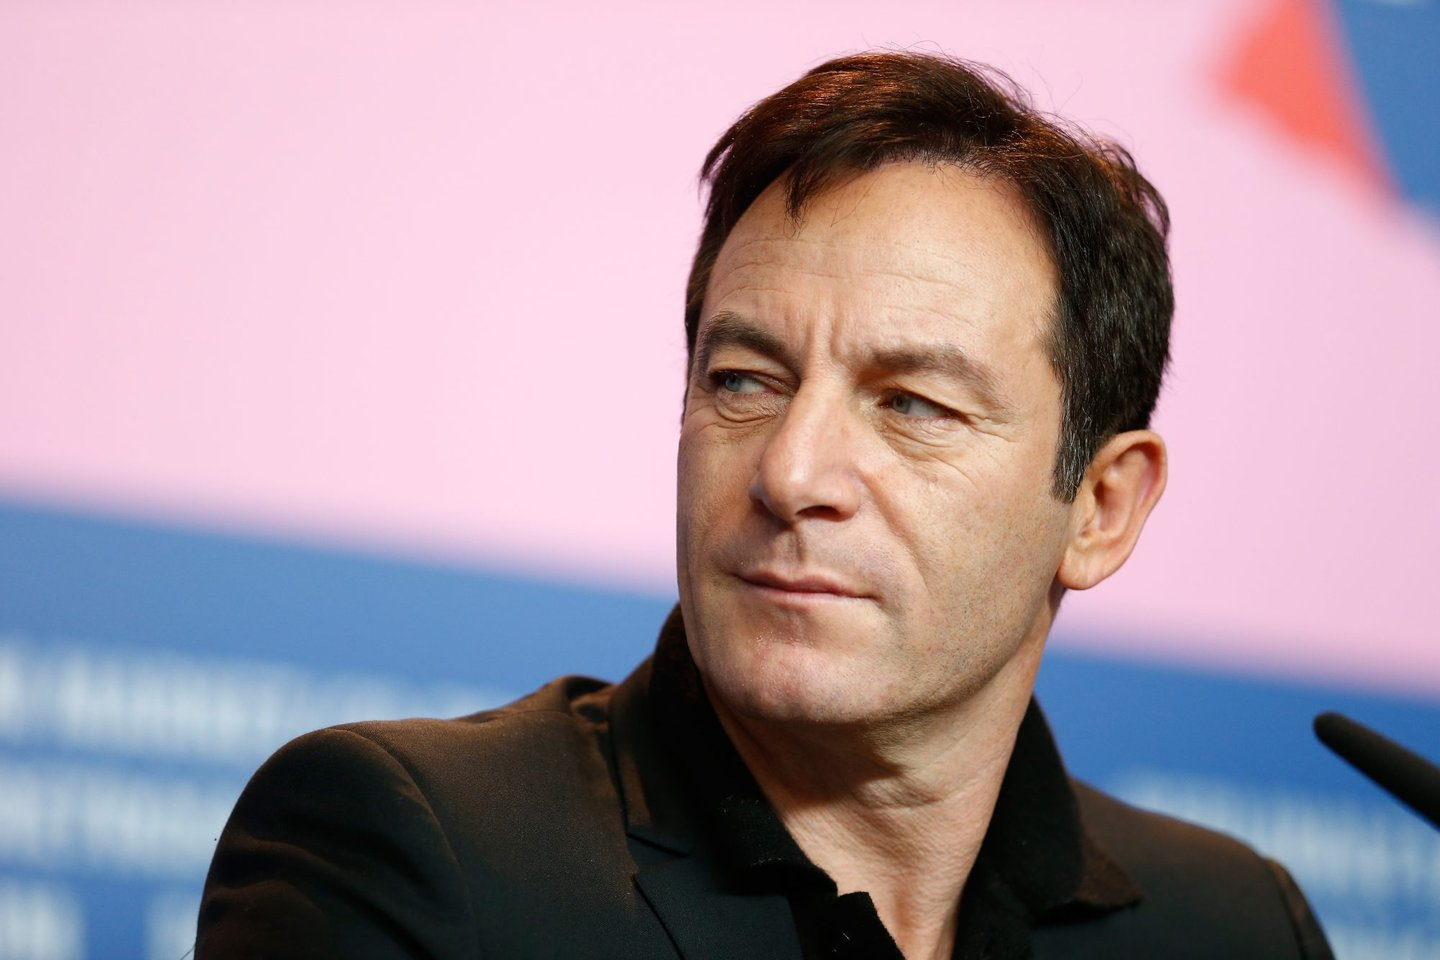 BERLIN, GERMANY - FEBRUARY 09: Jason Isaacs attends the 'Things People Do' press conference during 64th Berlinale International Film Festival at Grand Hyatt Hotel on February 9, 2014 in Berlin, Germany. (Photo by Andreas Rentz/Getty Images)